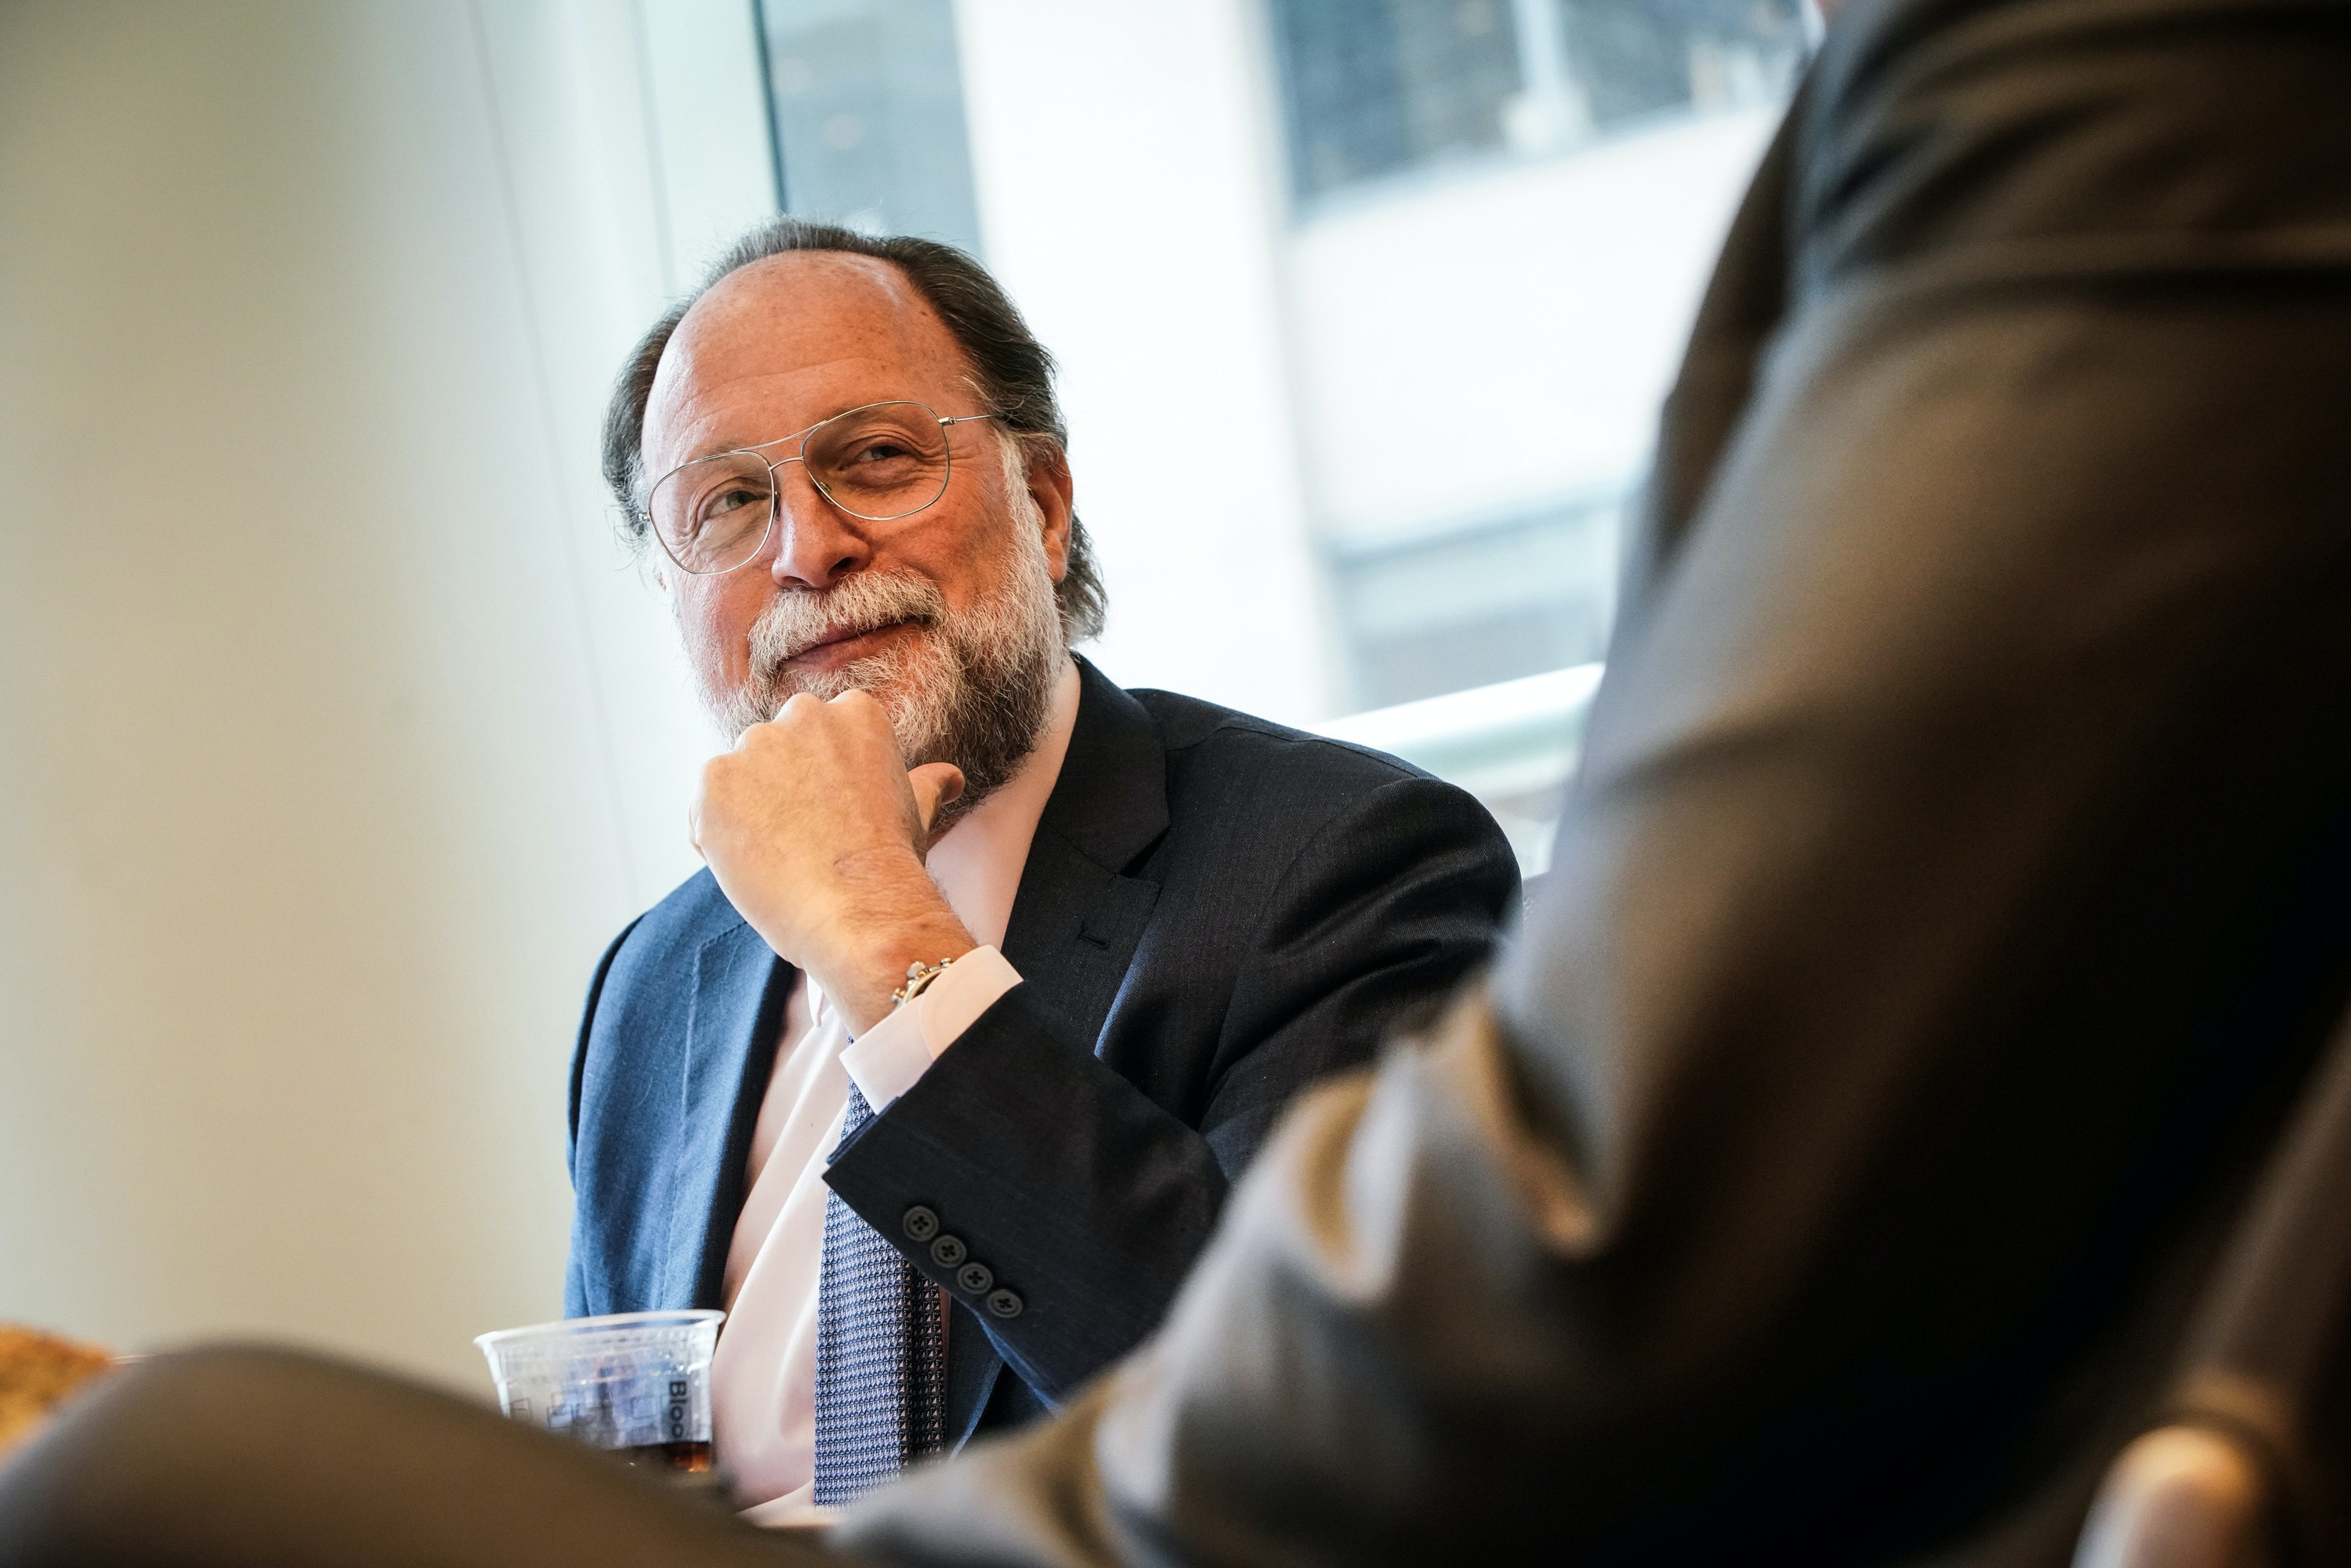 Ricardo Hausmann, Venezuela National Assembly leader Juan Guaido's representative to the Inter-American Development Bank (IDB), listens during an interview in New York, U.S., on Friday, April 5, 2019. The bank passed a motion Friday to certify Hausmann, a Harvard University economist and longtime critic of Nicolas Maduro's regime, as the nation's IDB governor. Photographer: Christopher Goodney/Bloomberg via Getty Images